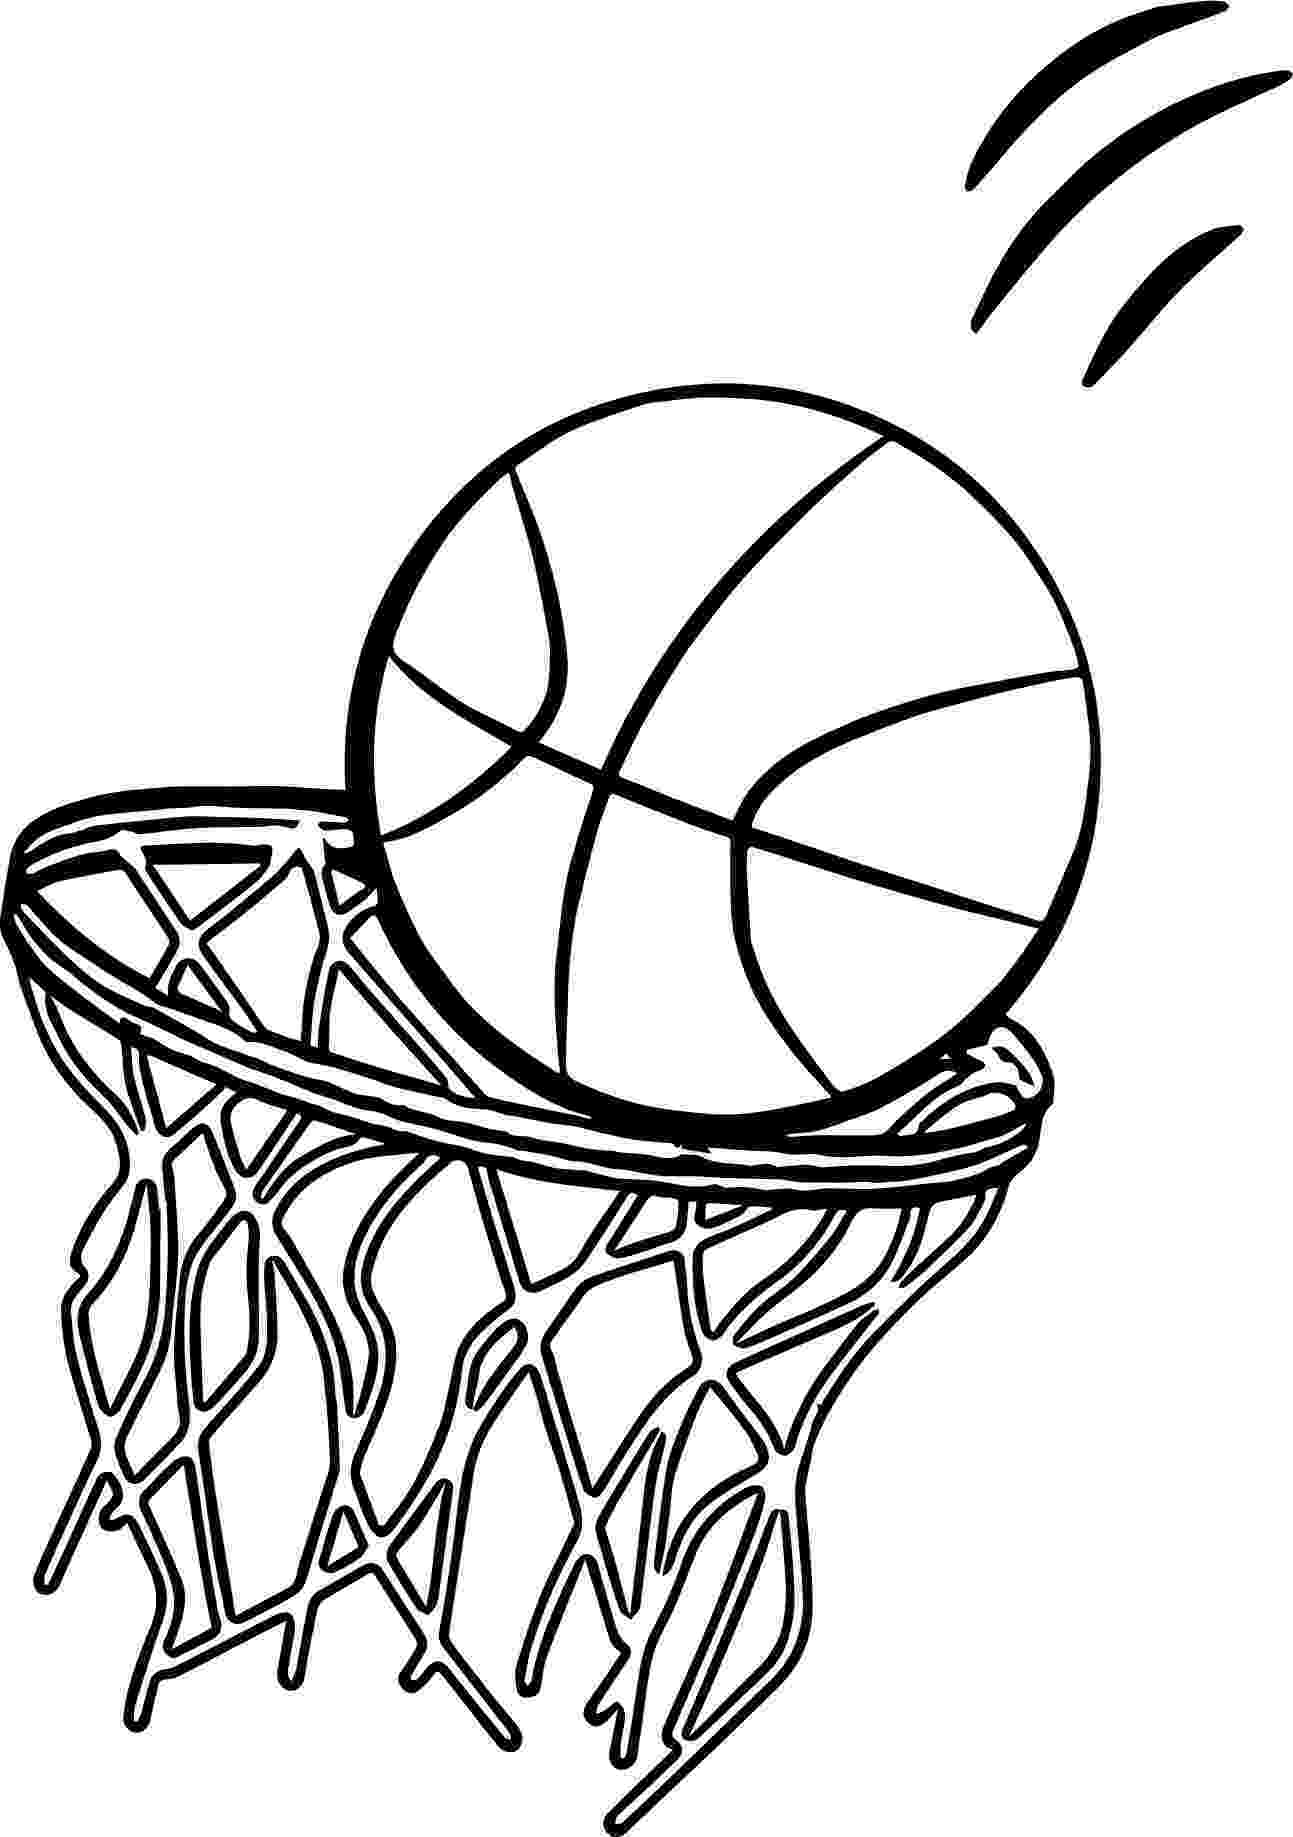 basketball pictures to color basketball coloring pages free download on clipartmag color to pictures basketball